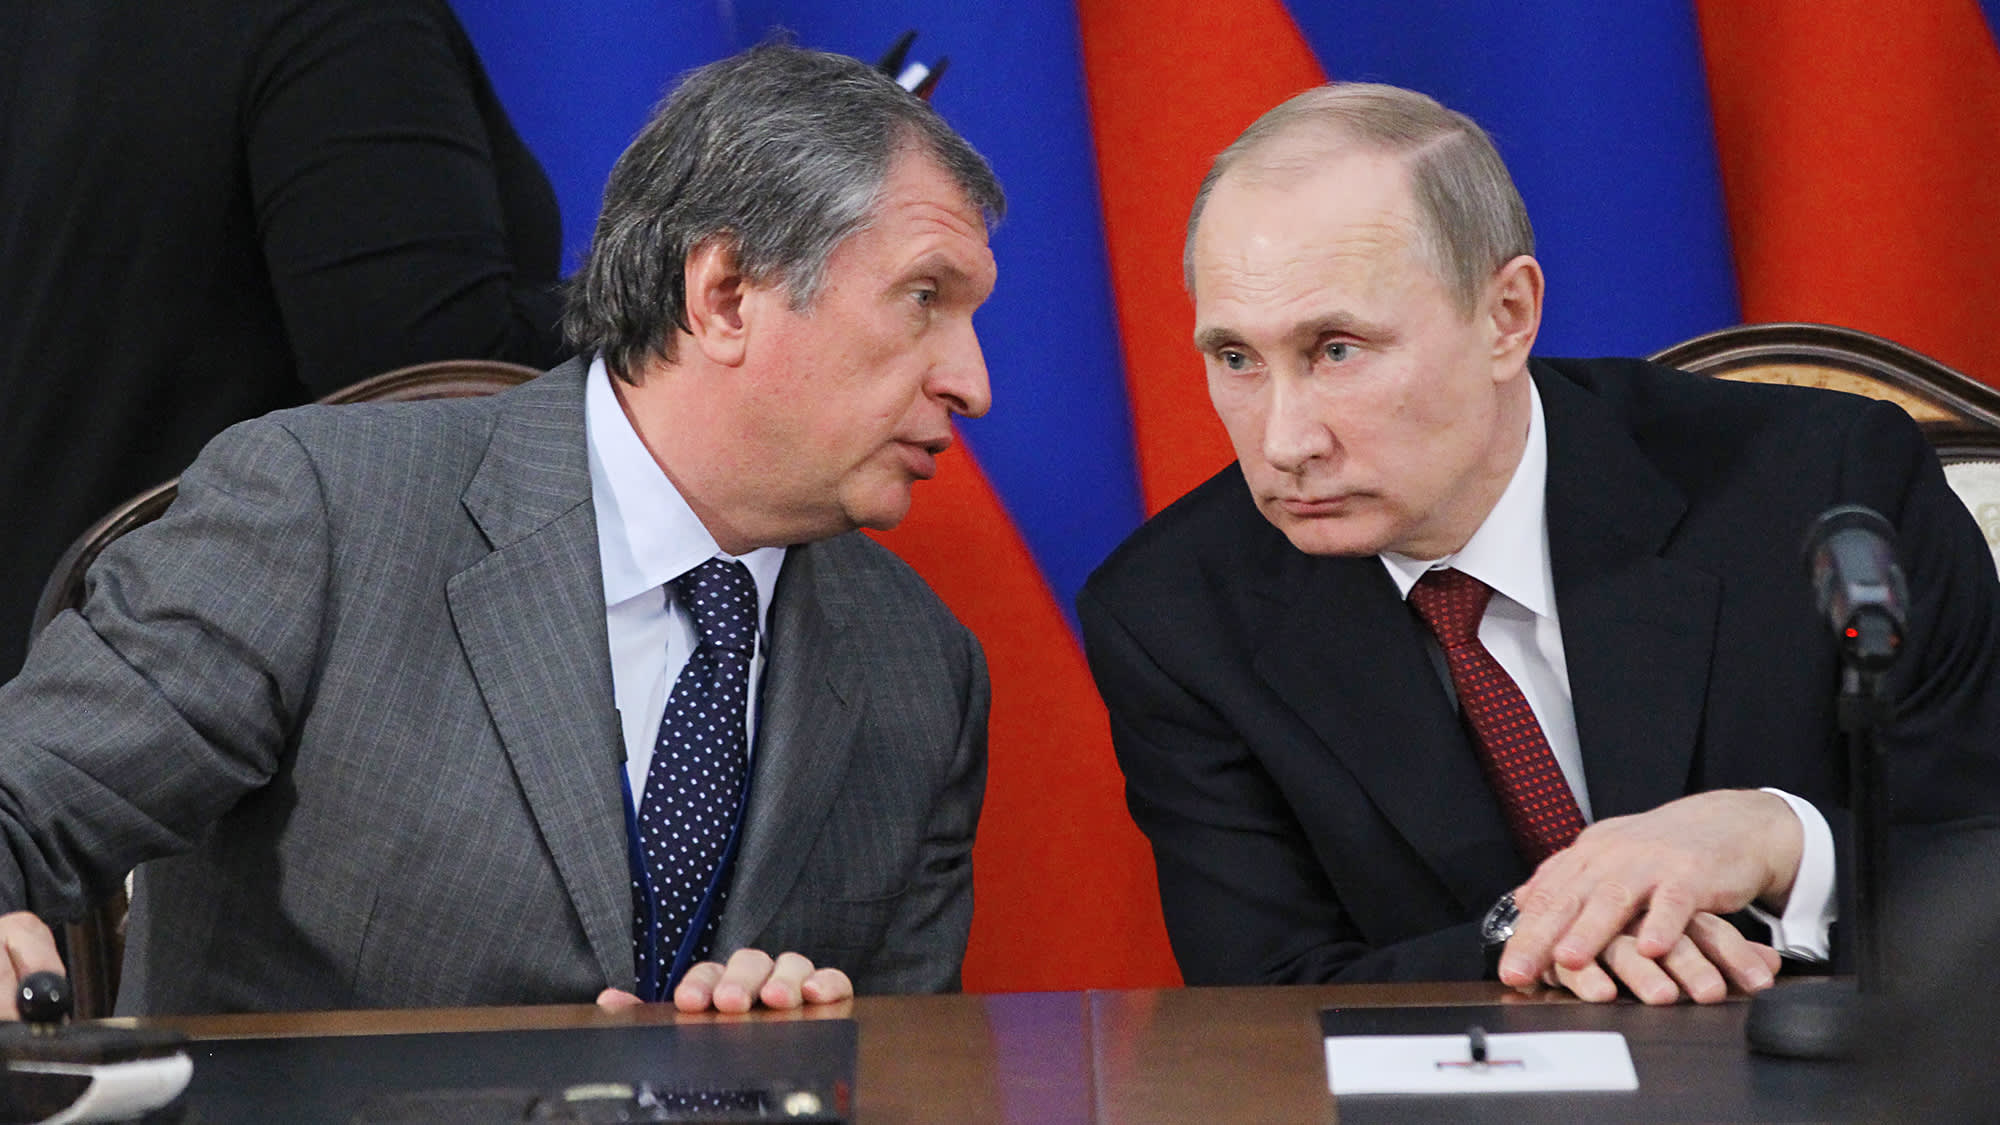 Heads of Rosneft and Gazprom ordered to publish data on their income 12/22/2014 100